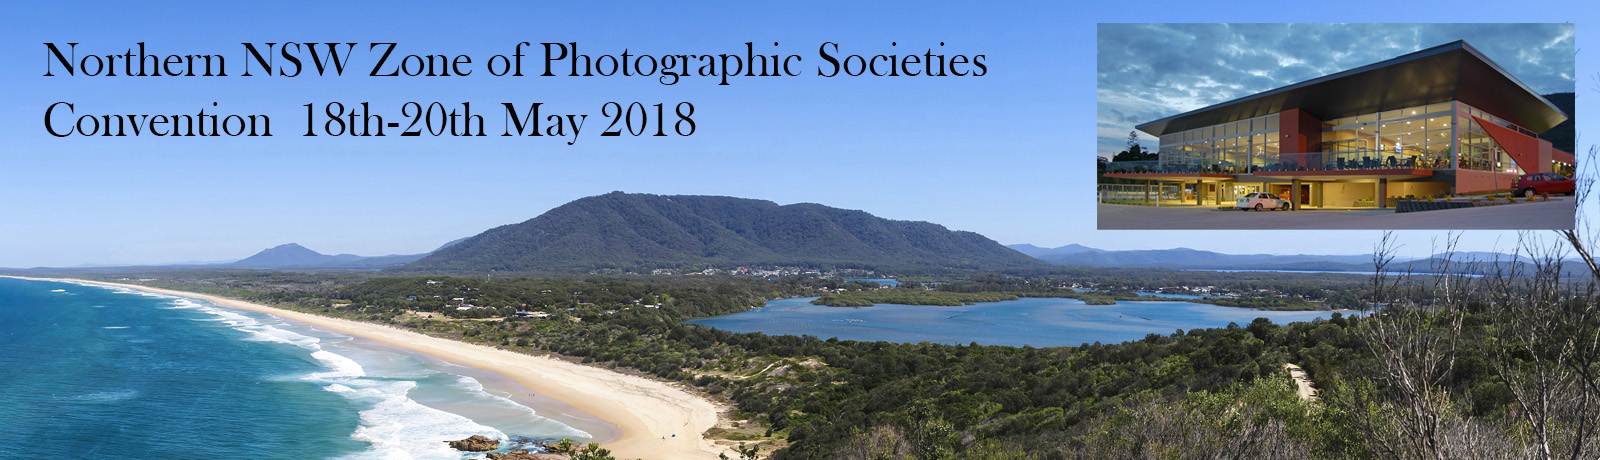 Northern NSW Zone of Photographic Societies